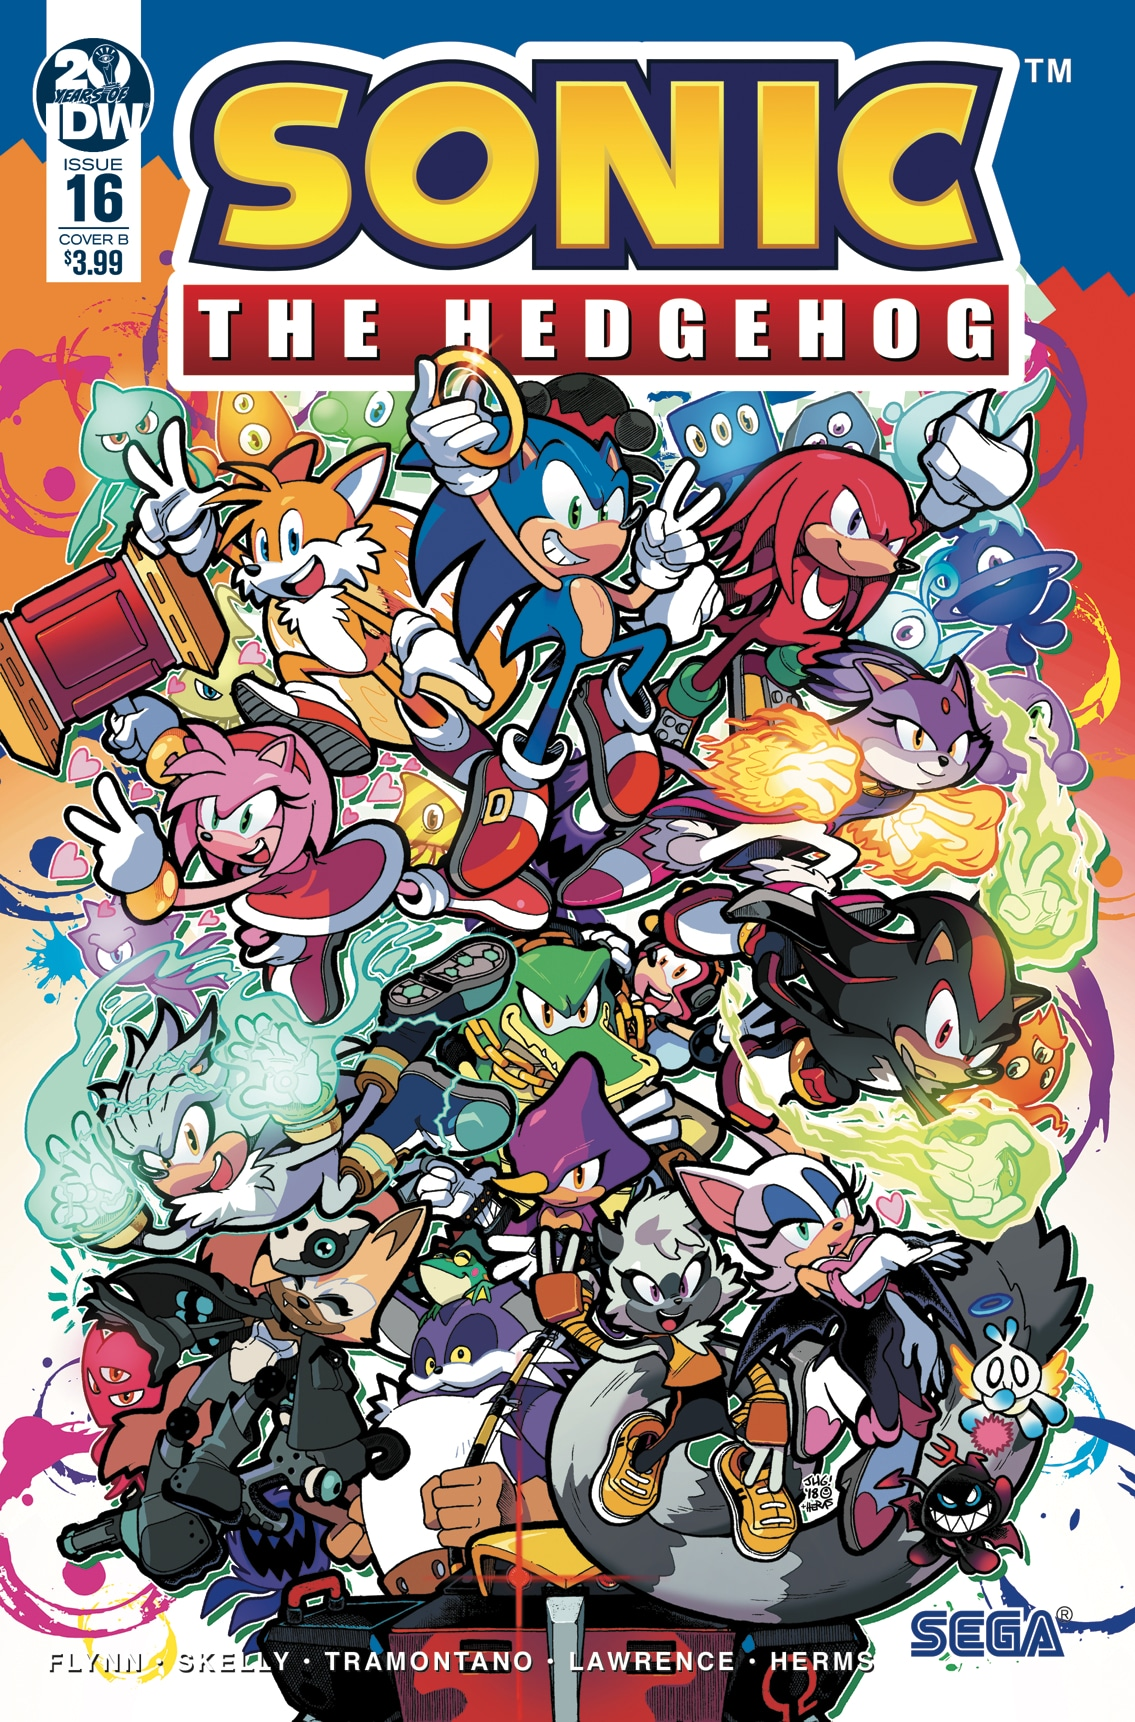 Idw Sonic The Hedgehog Issue 16 Sonic News Network Fandom